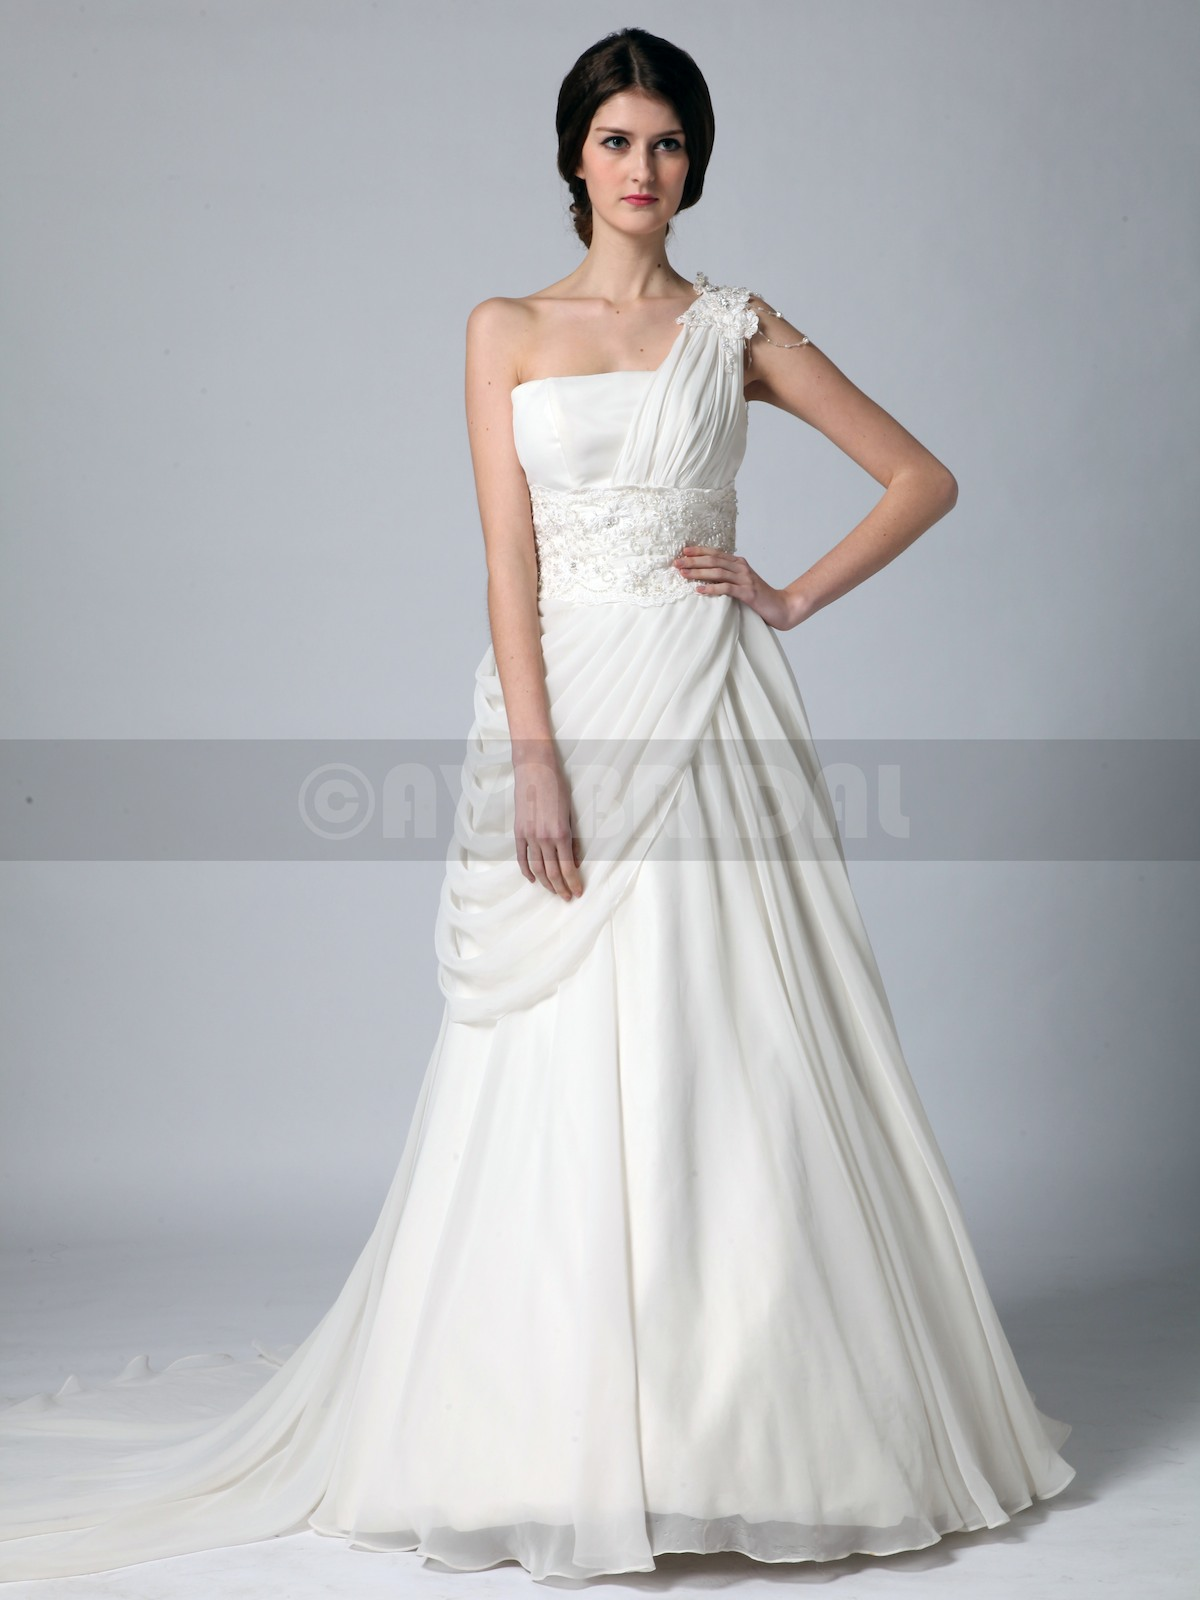 Grecian Goddess Wedding Dress - Zoe - Front